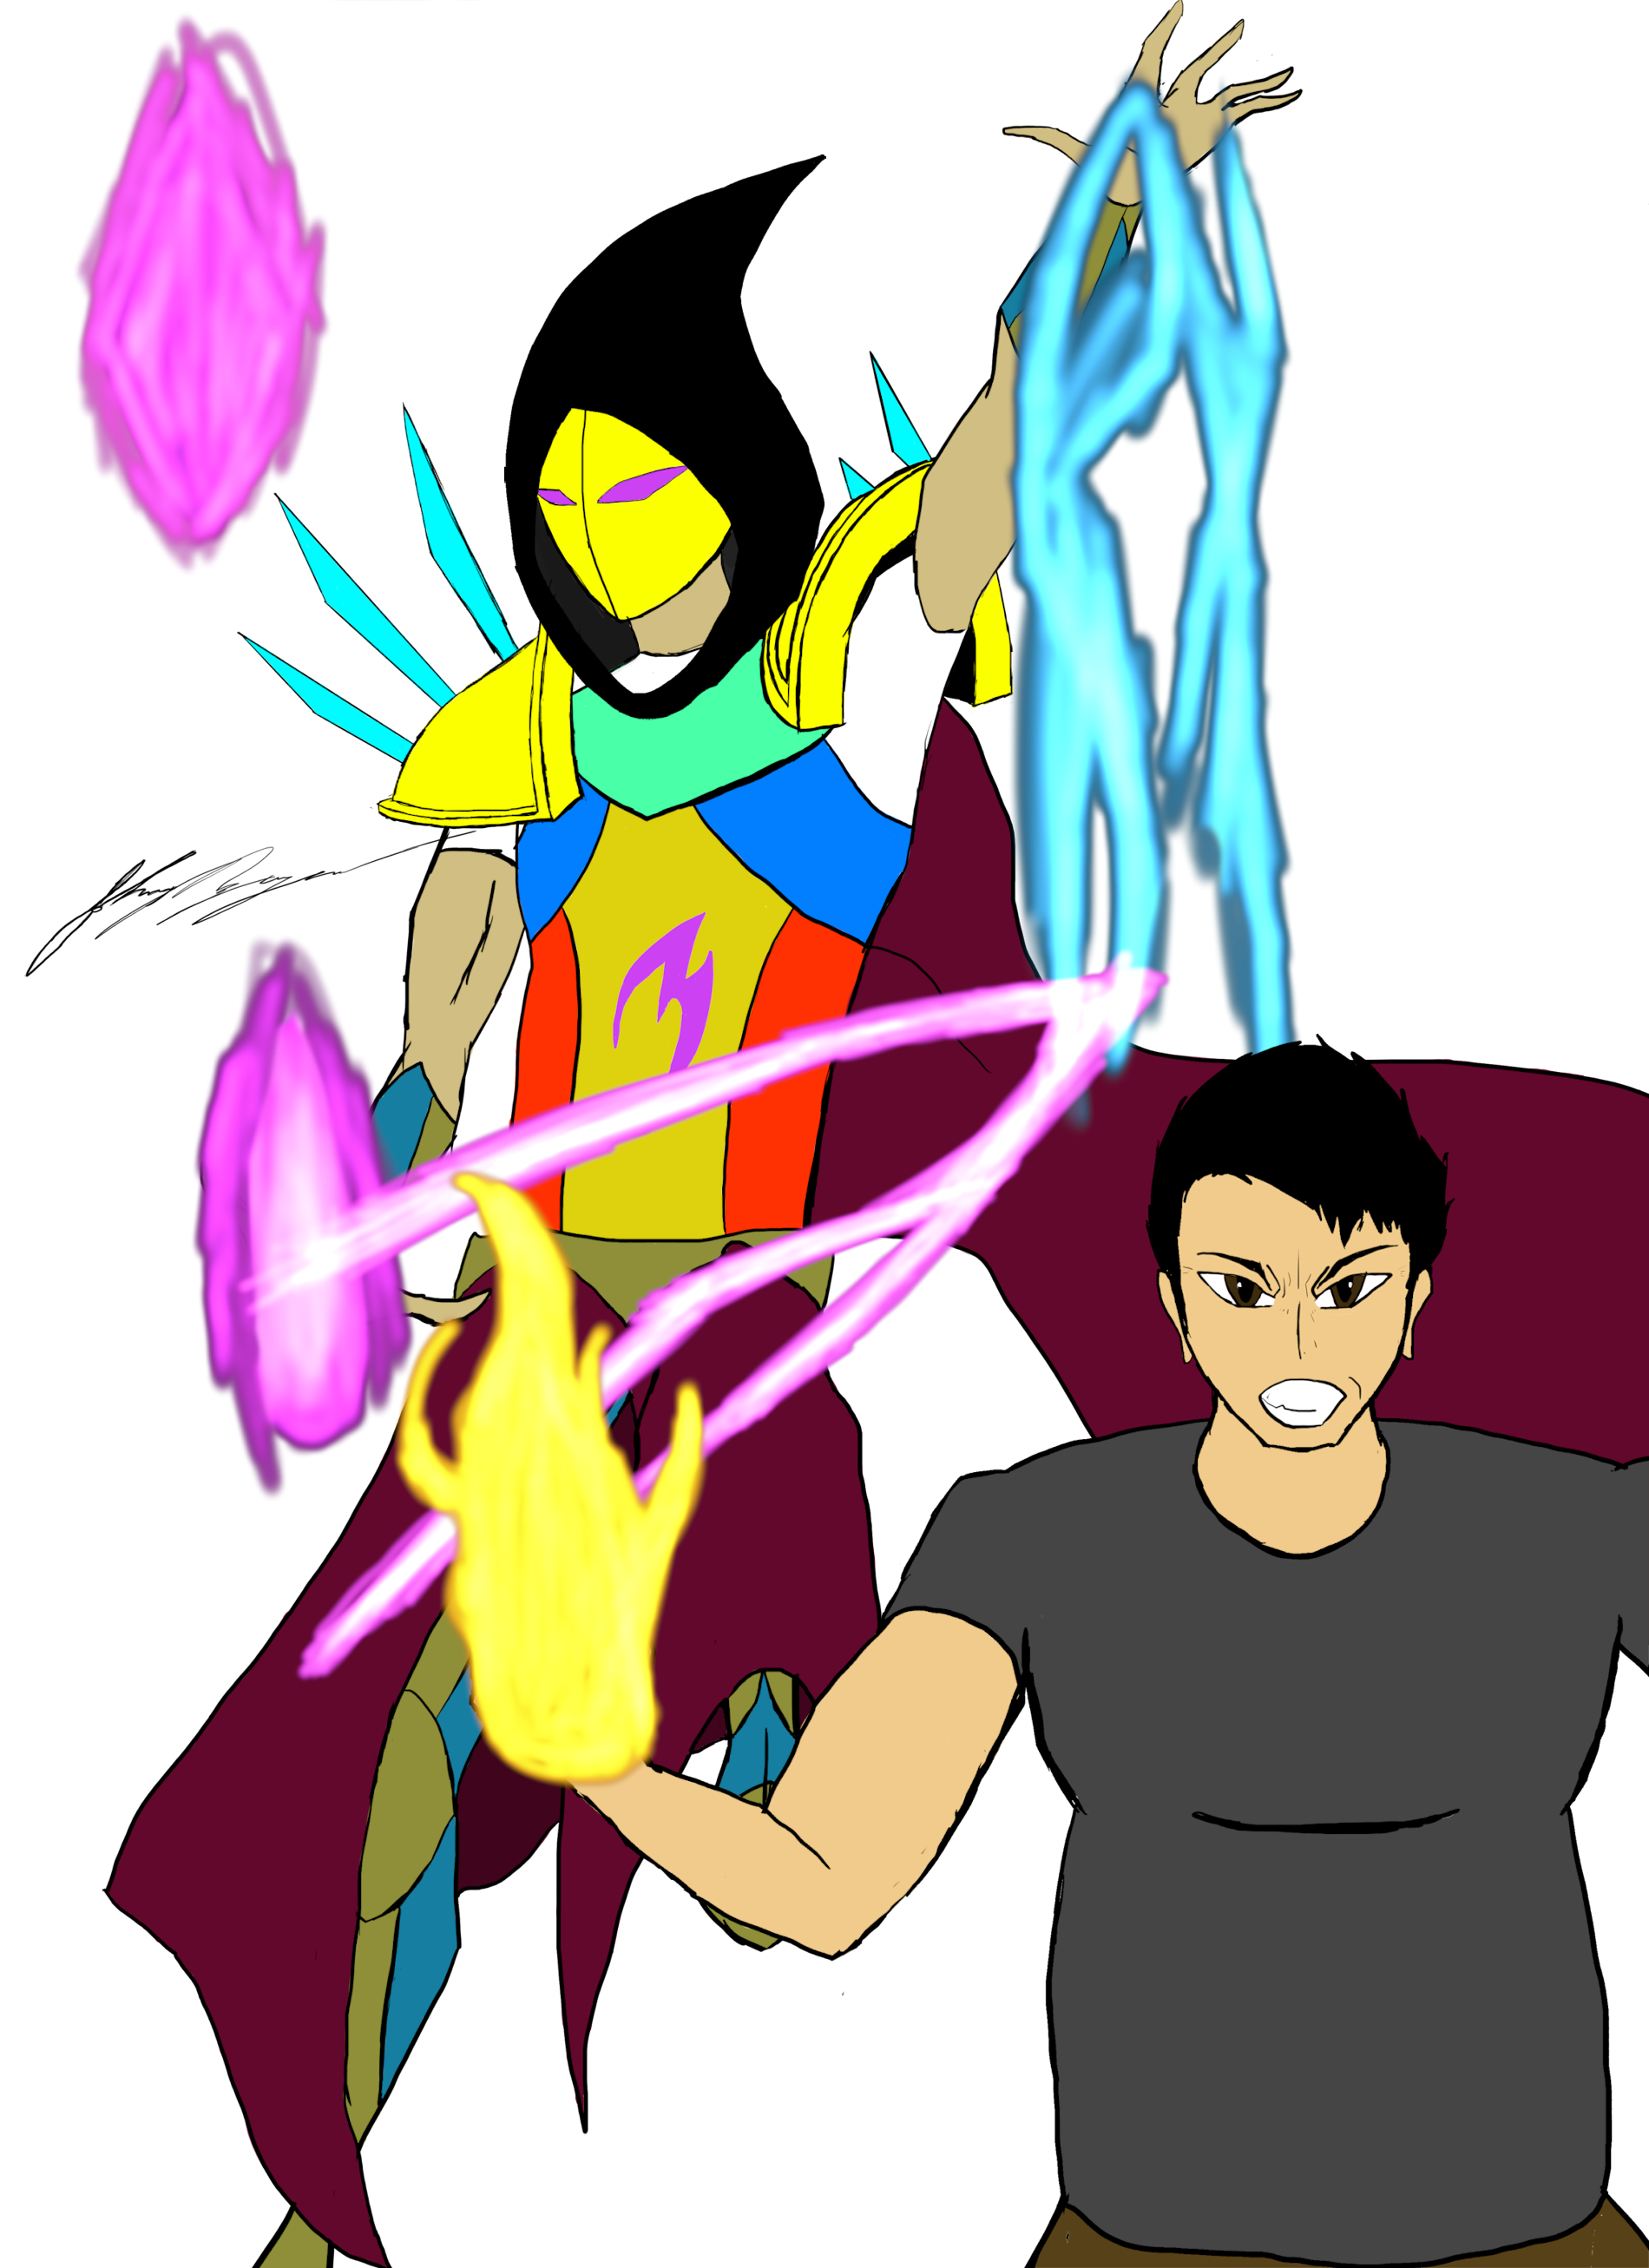 ArchMage and PyroMancer